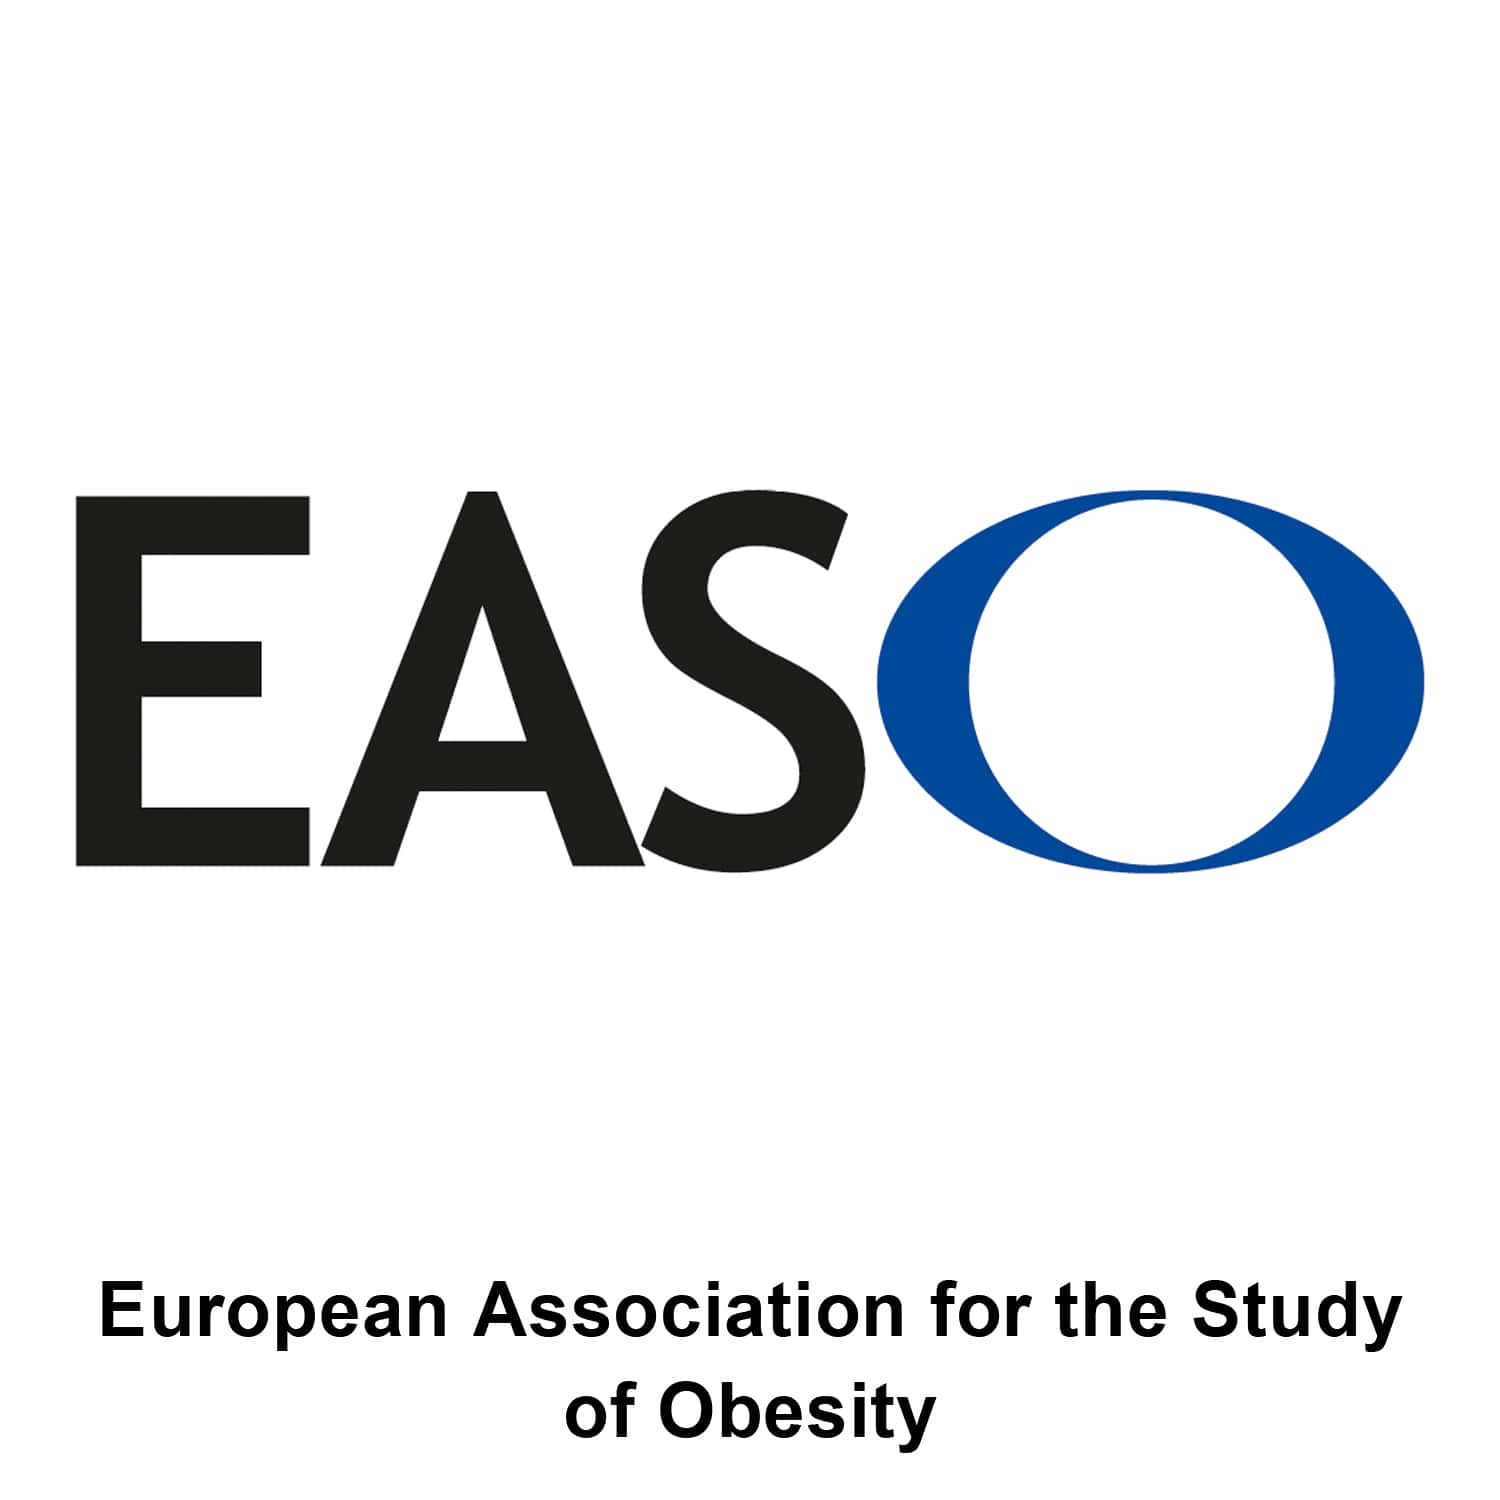 European Association for the Study of Obesity - EASO